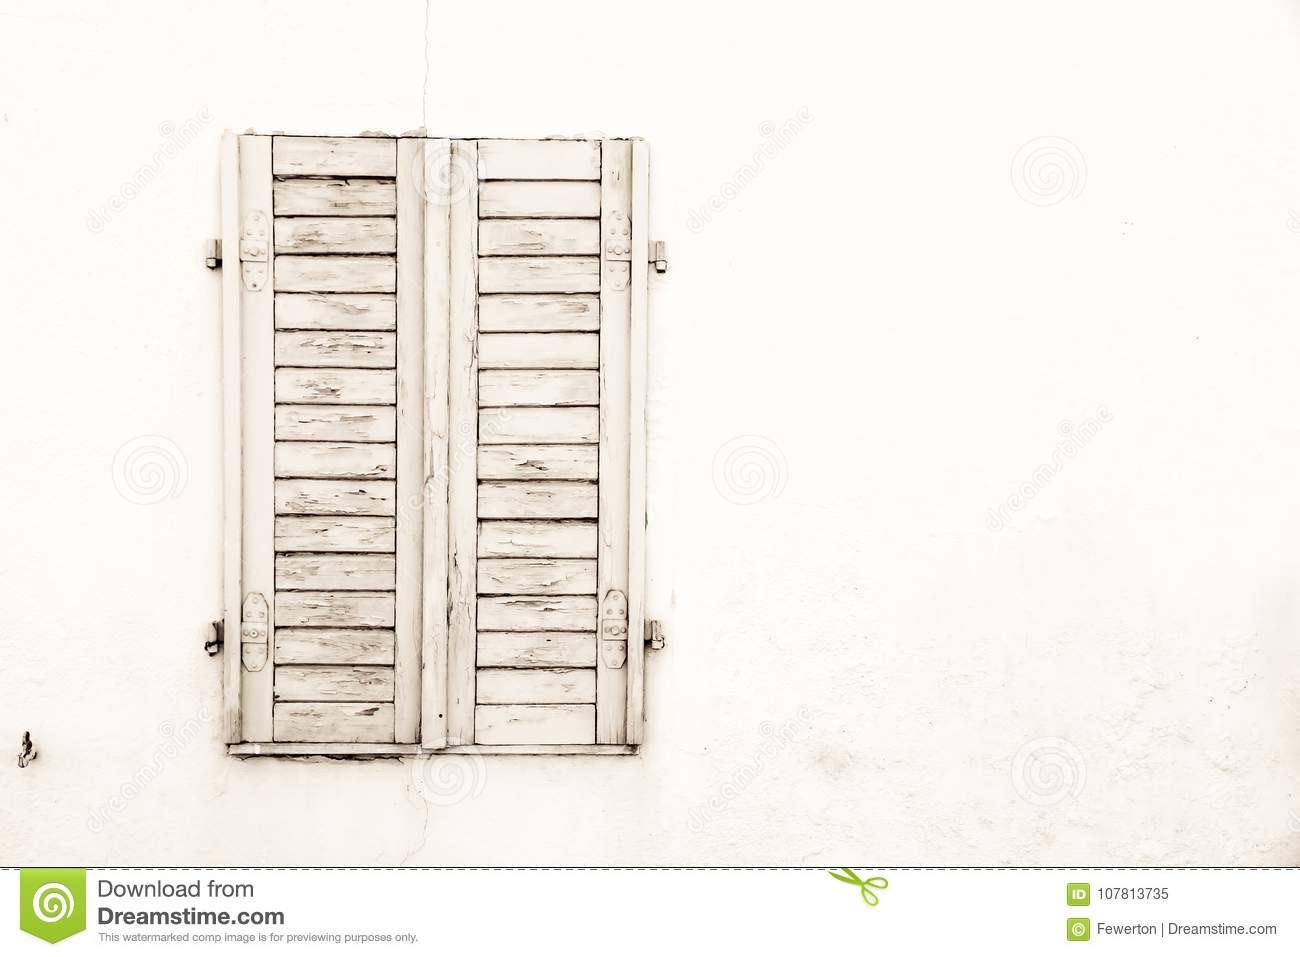 Rustic old grungy and weathered white grey wooden closed window shutters with peeling paint